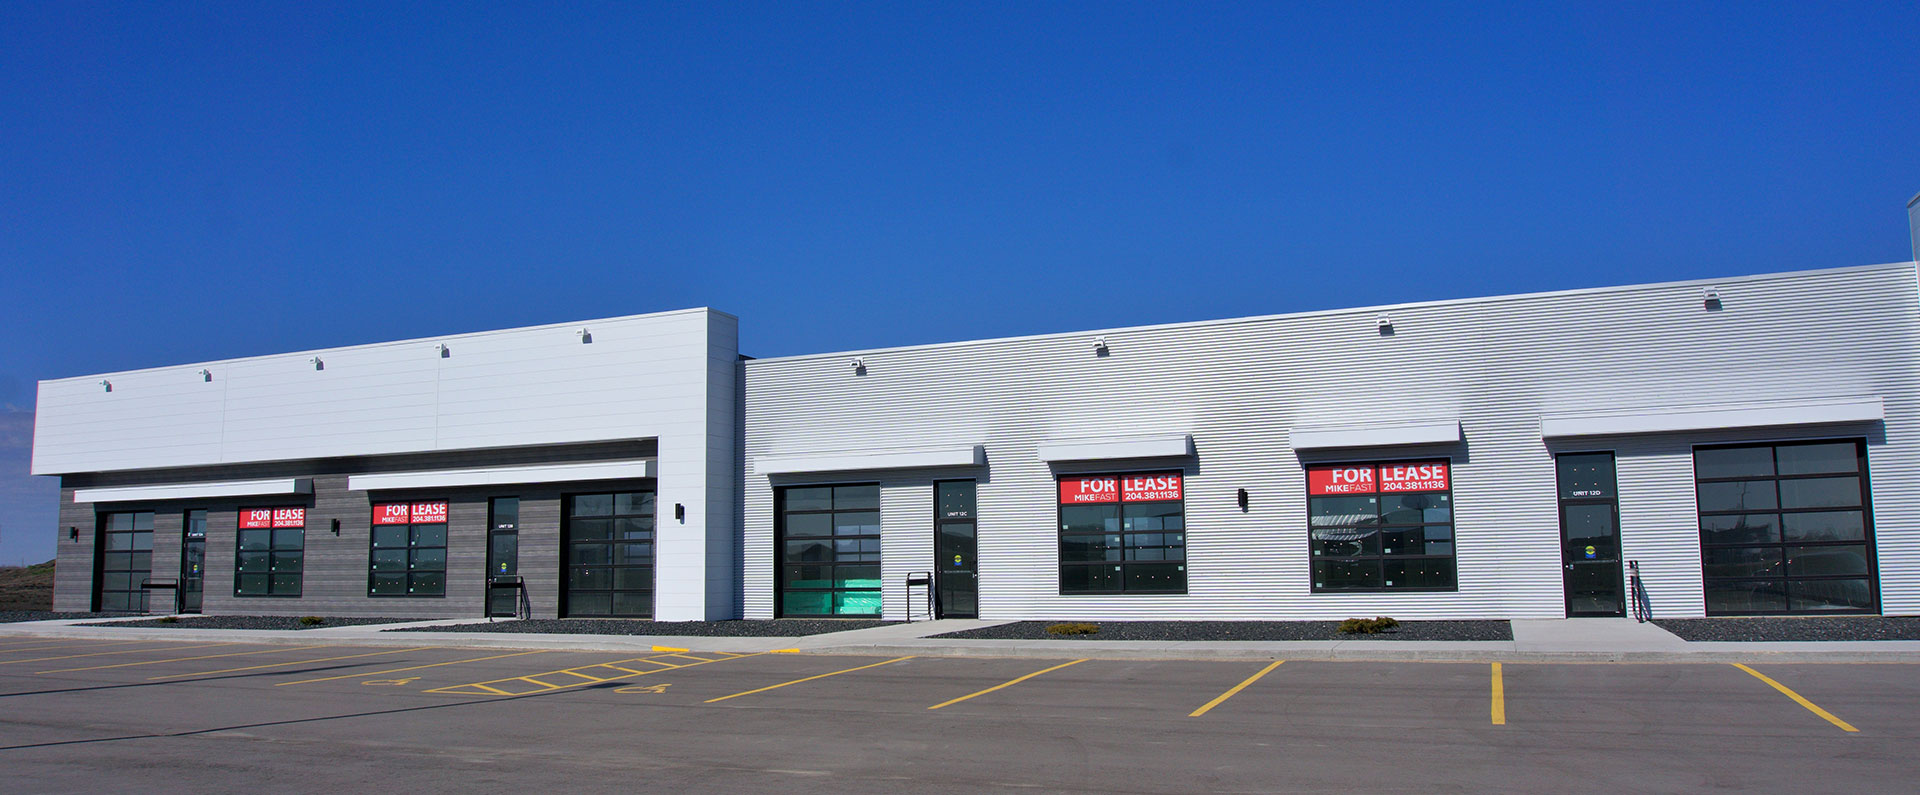 An angled photo of the front of a building in the Steinbach North Business Park development, with red